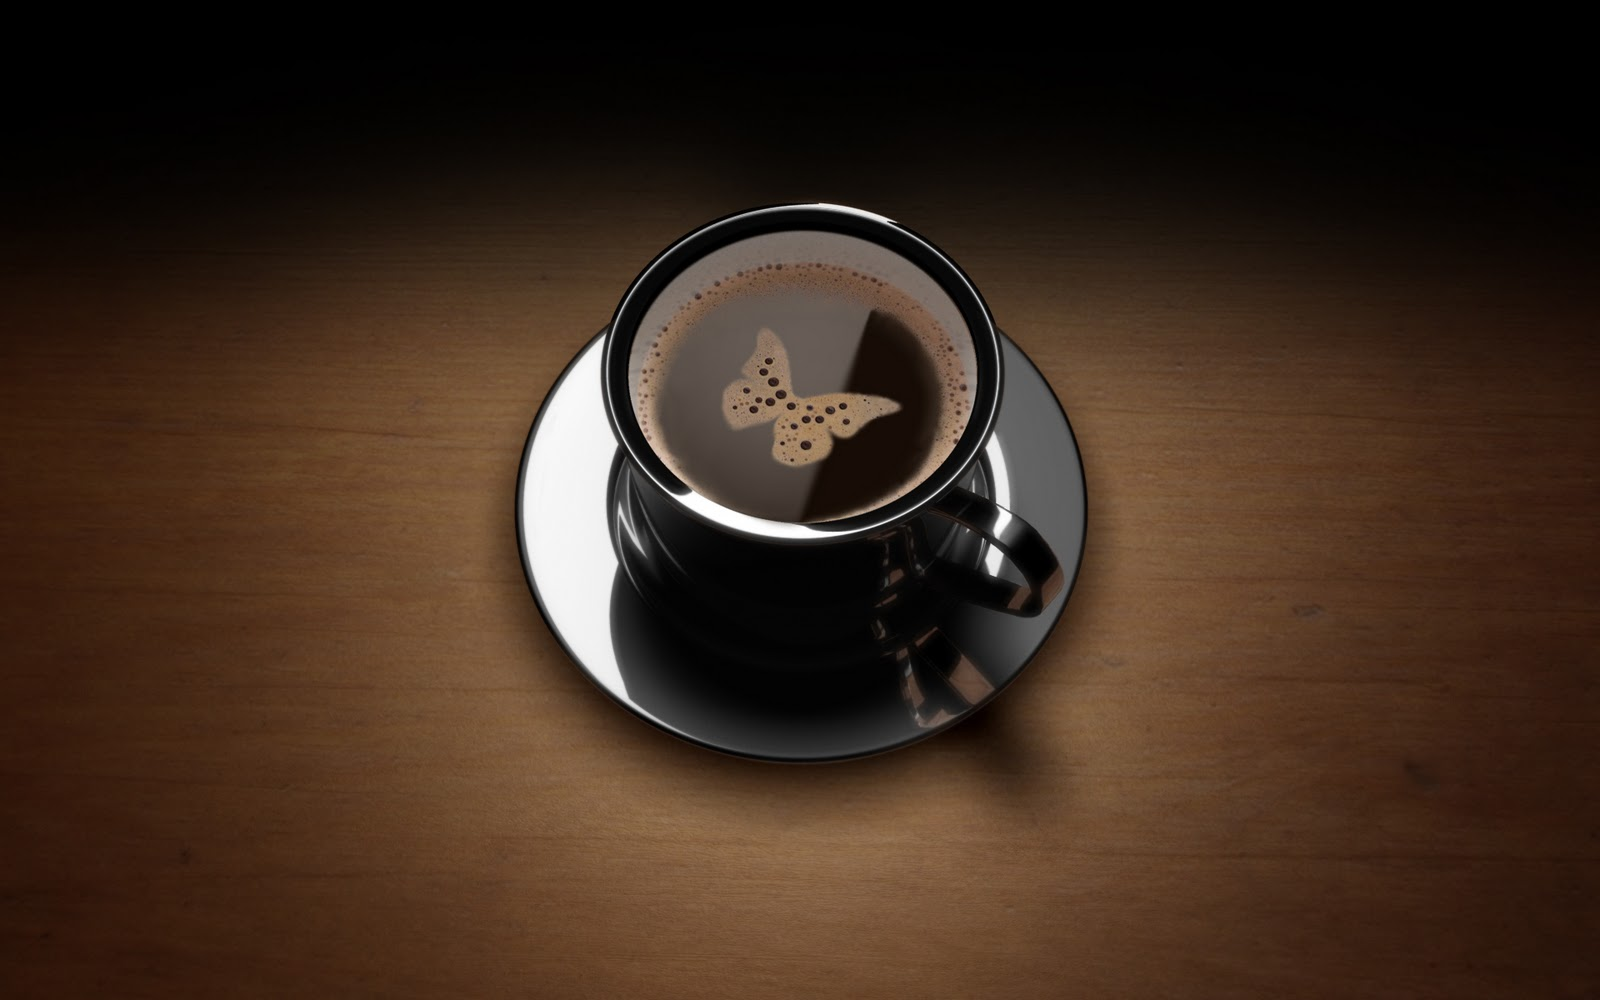 Coffee Lovers Love Hd Wallpapers: Good Morning Pictures For Love